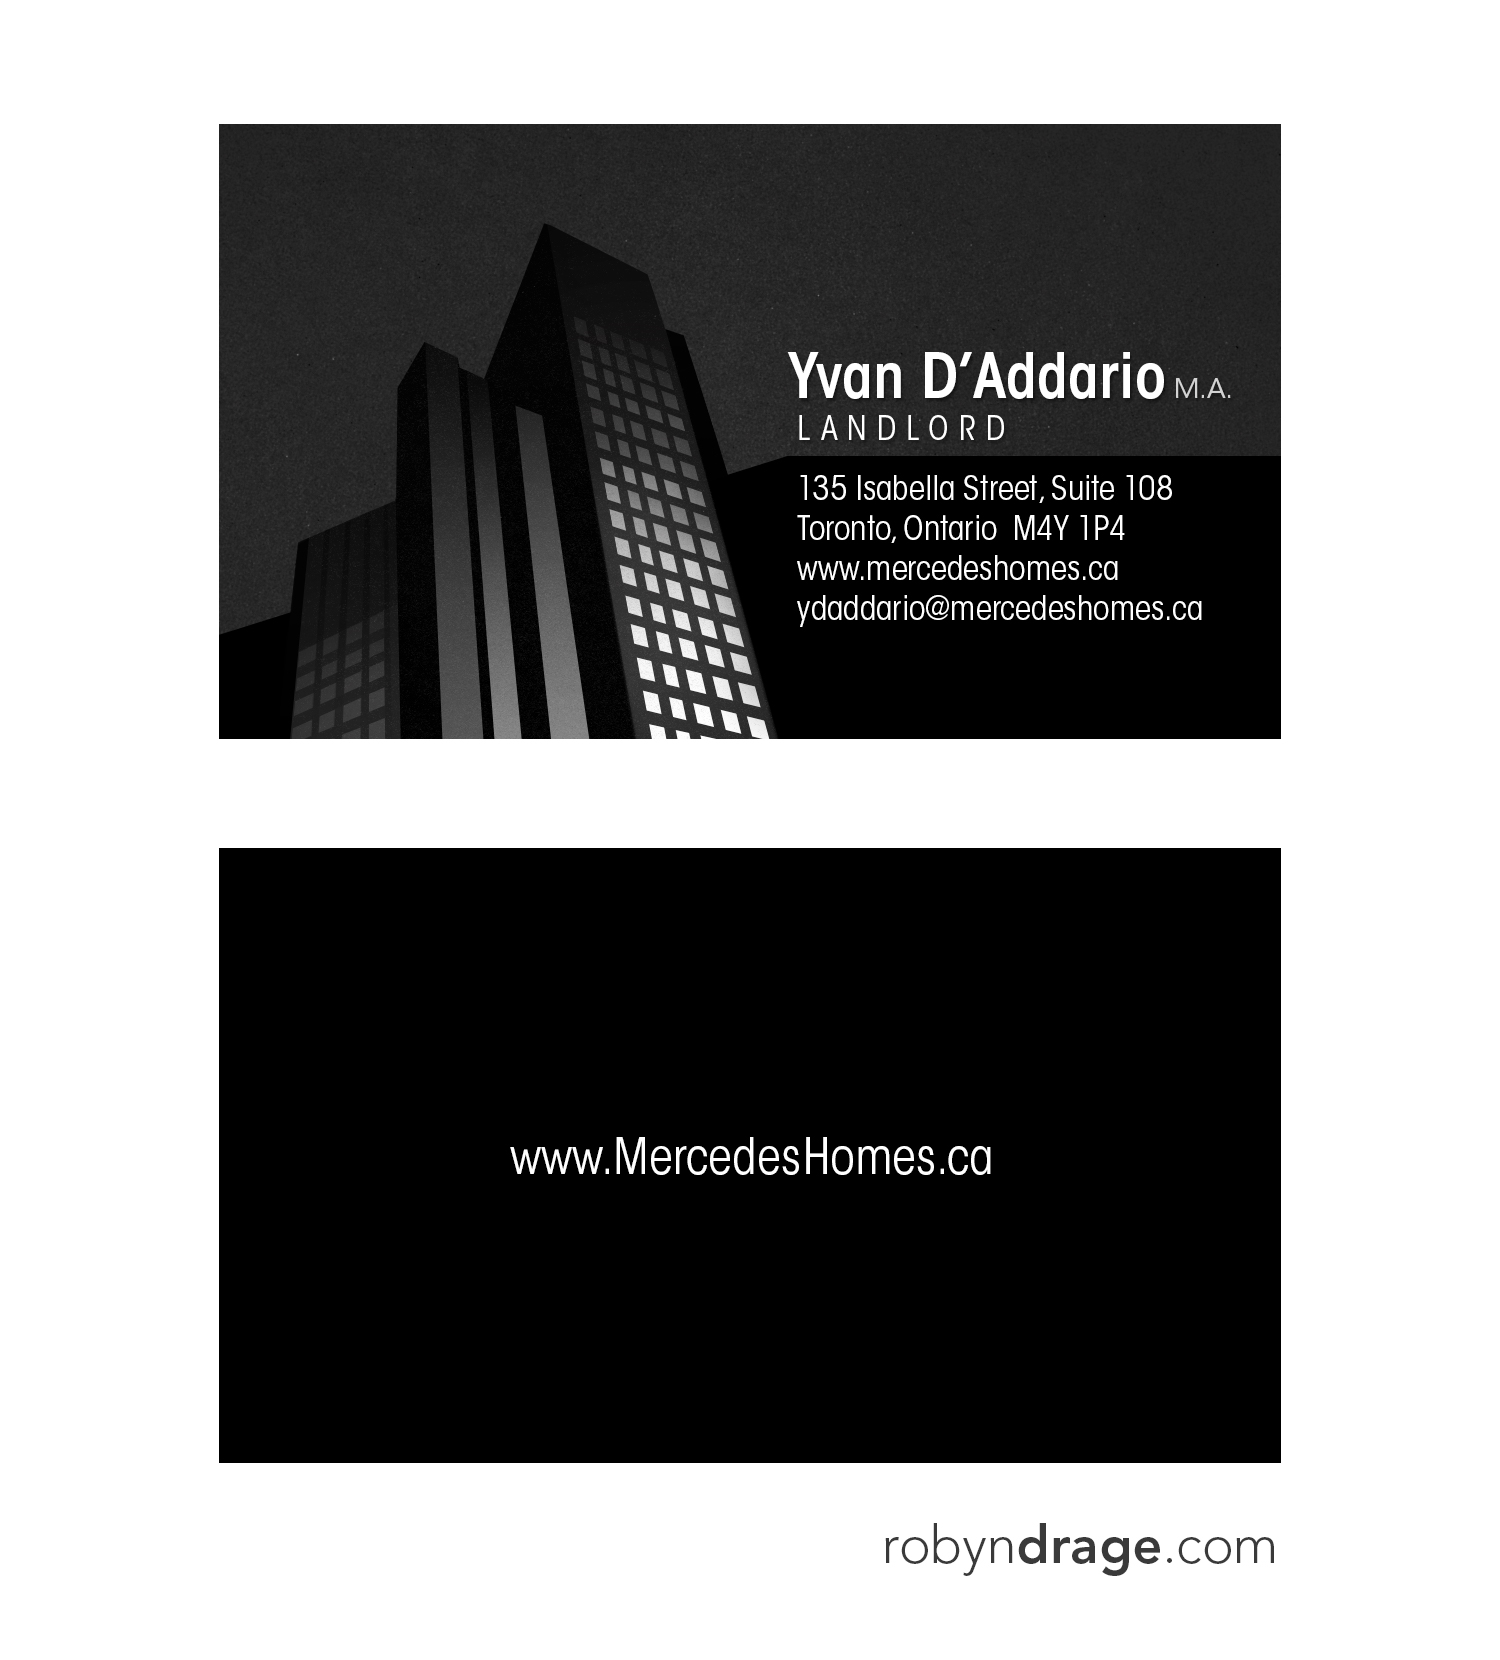 Web graphic design robyn drage business cards real estate landlord reheart Choice Image